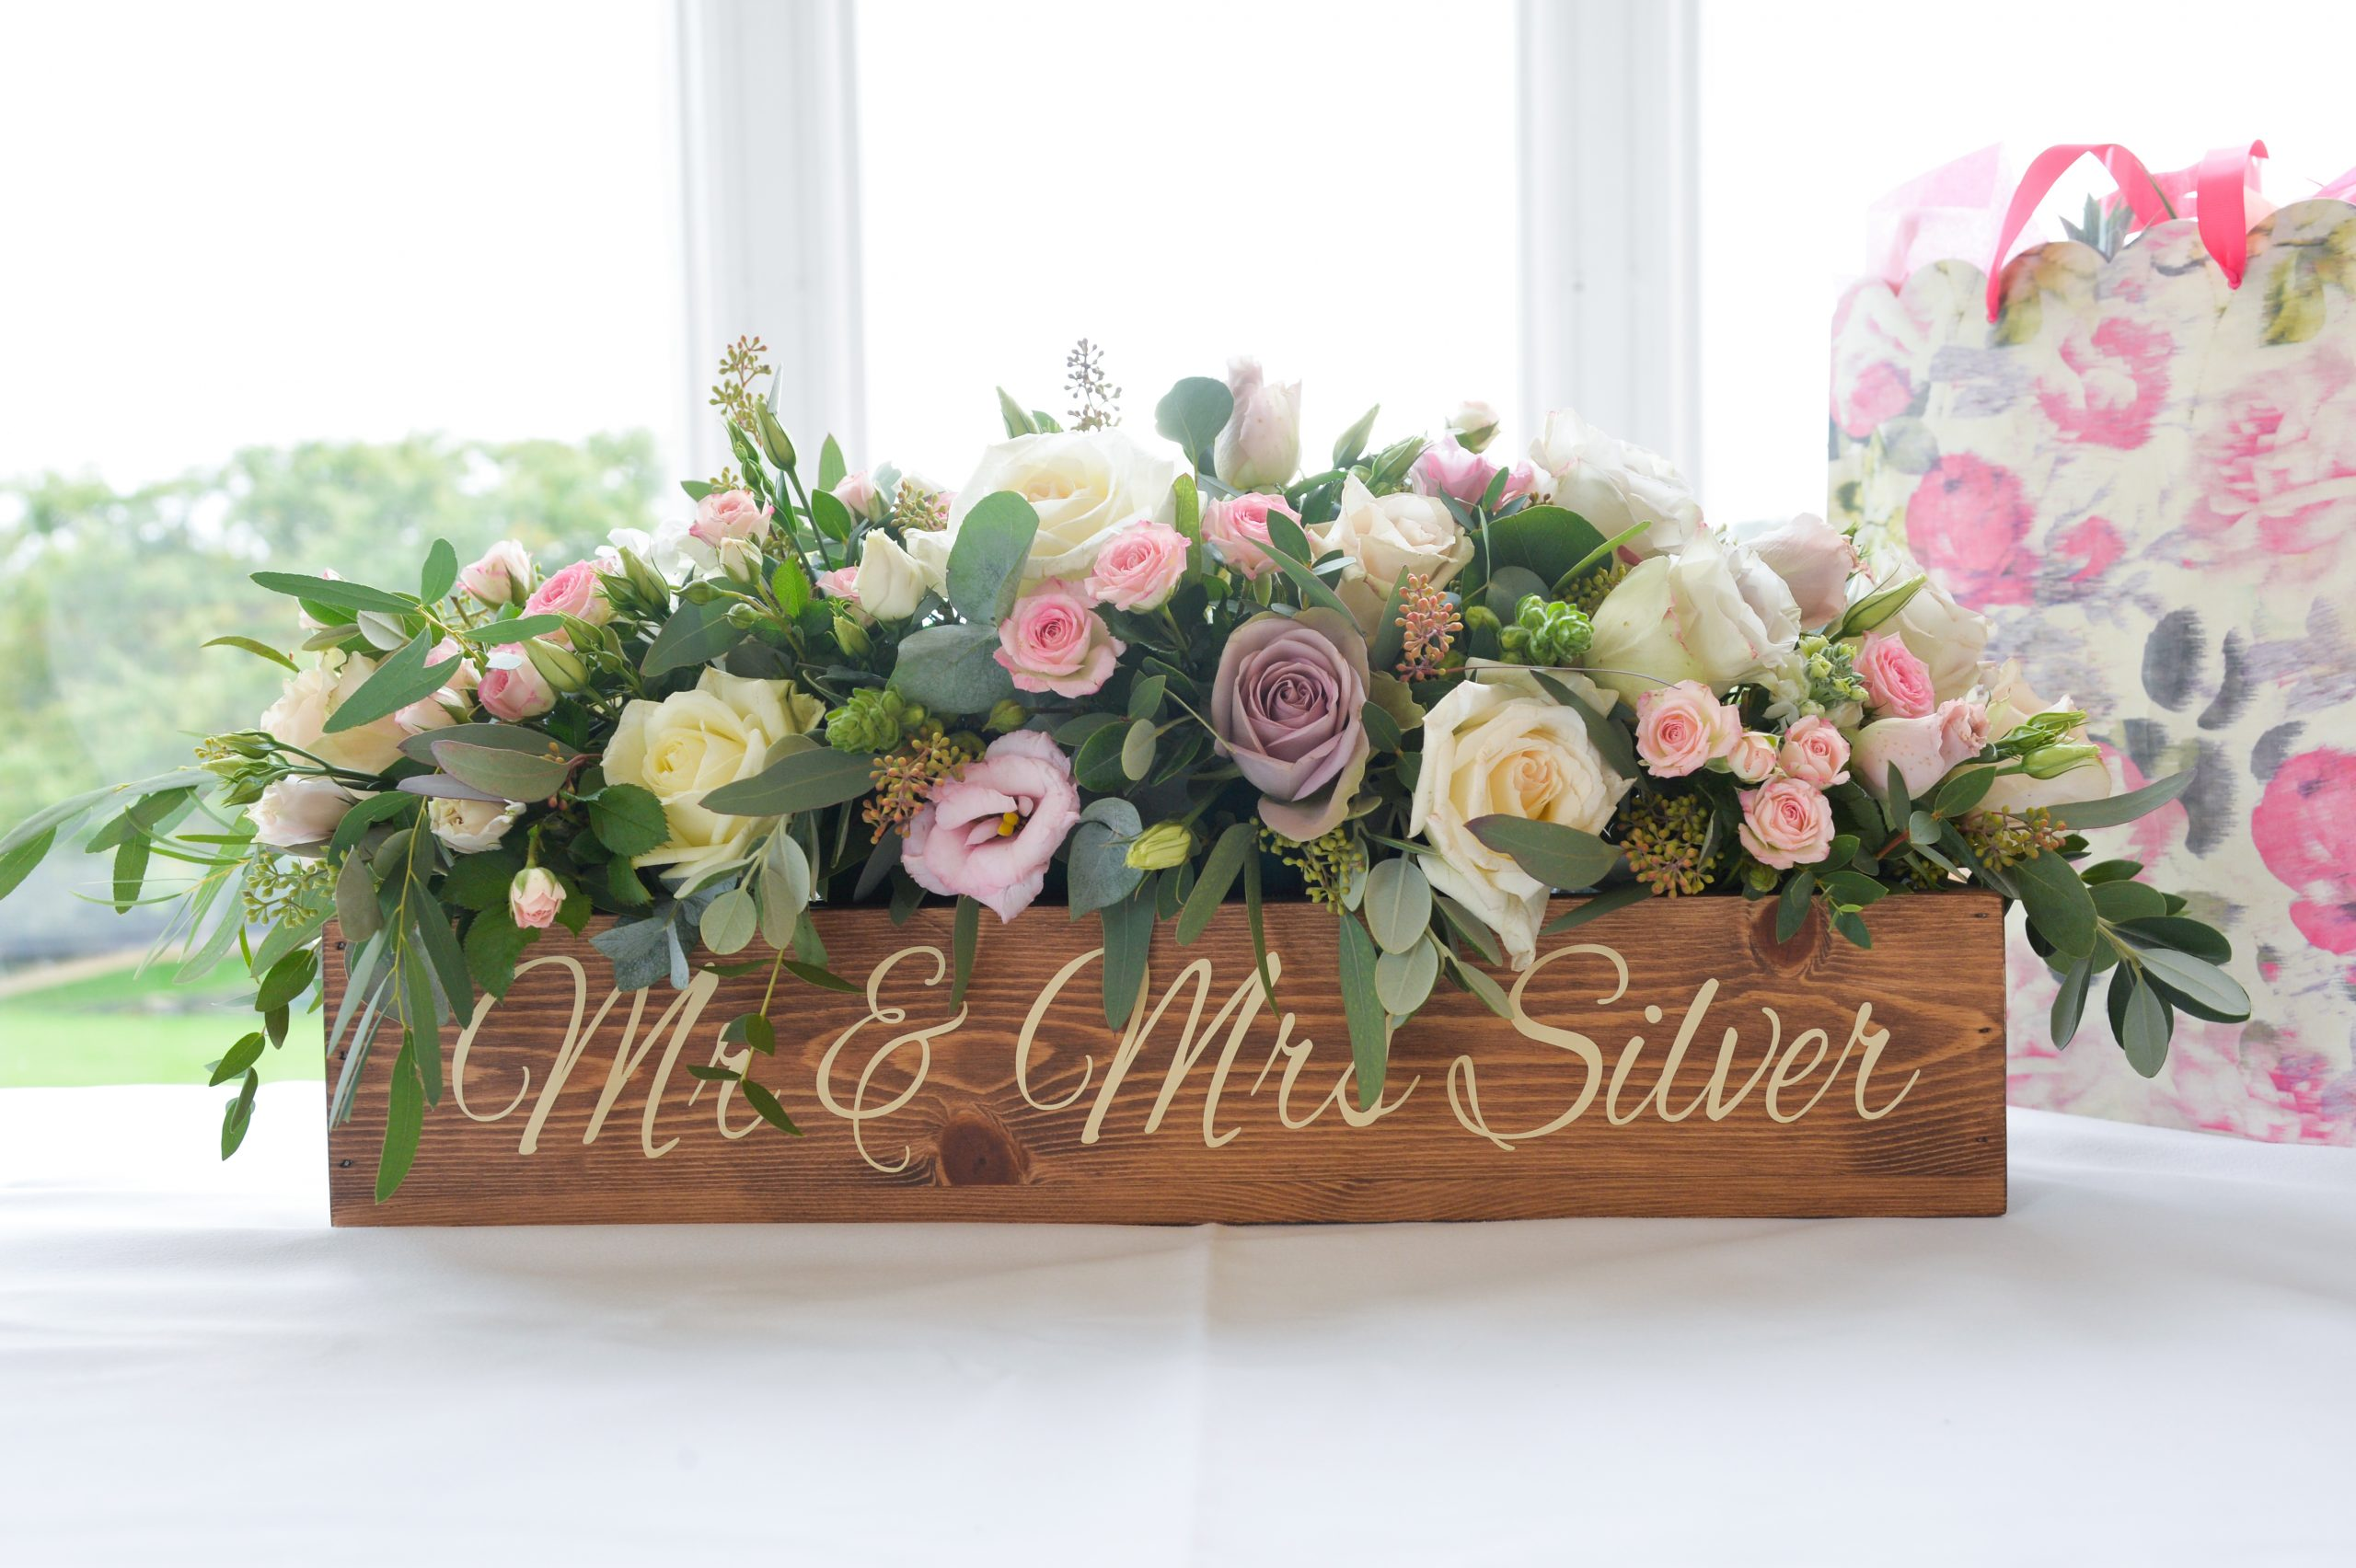 Mr and Mrs Silver floral arrangement in wooden box